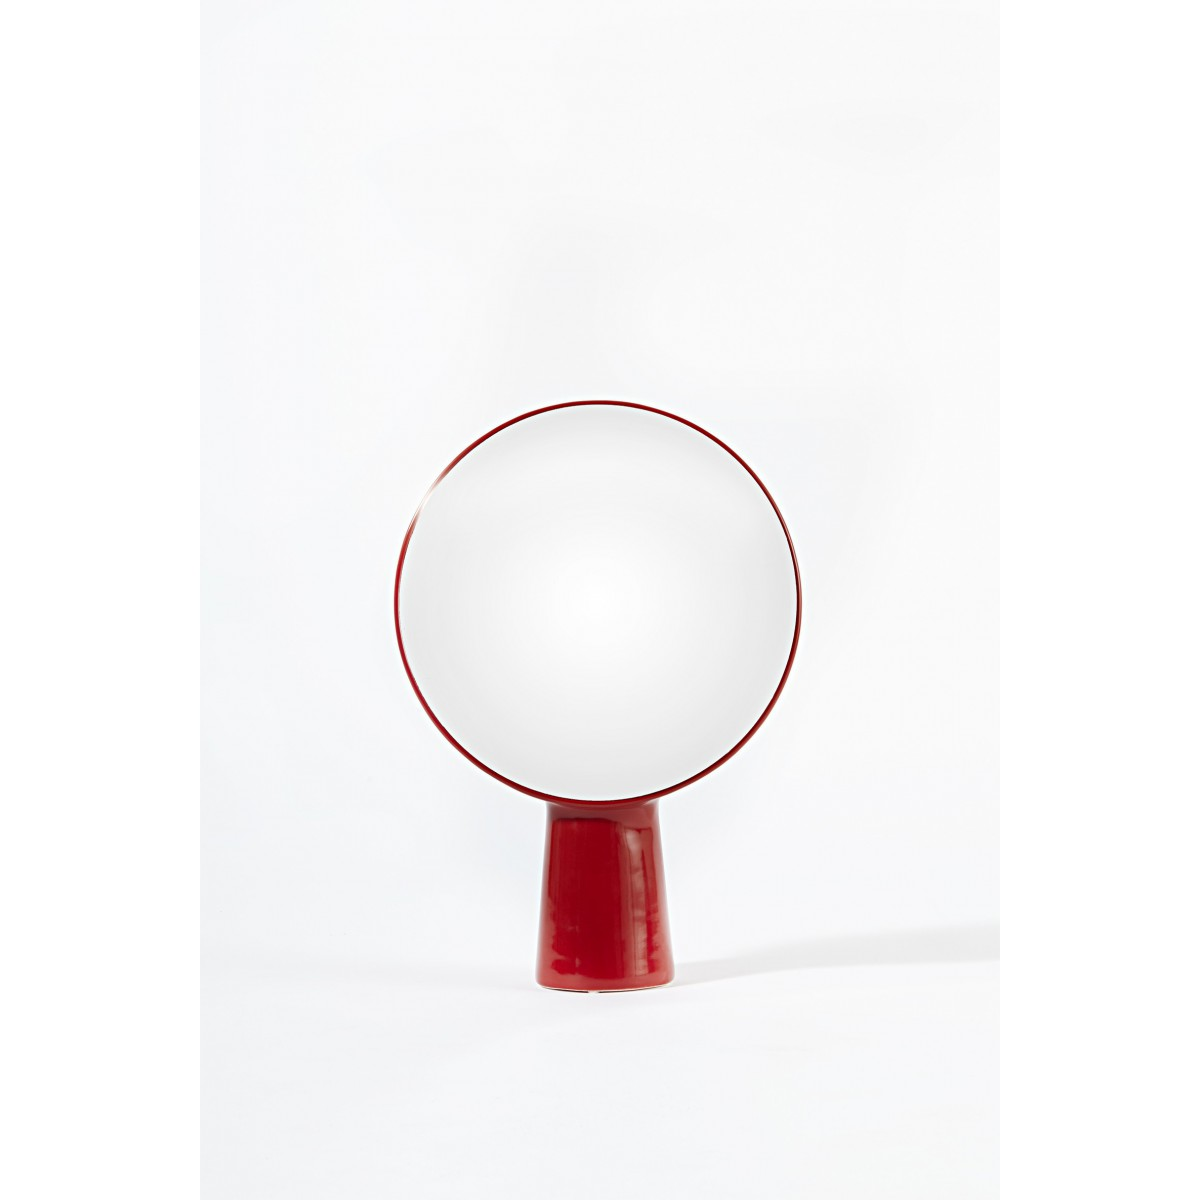 Miroir de table design cyclope par ionna vautrin for Miroir a poser sur table